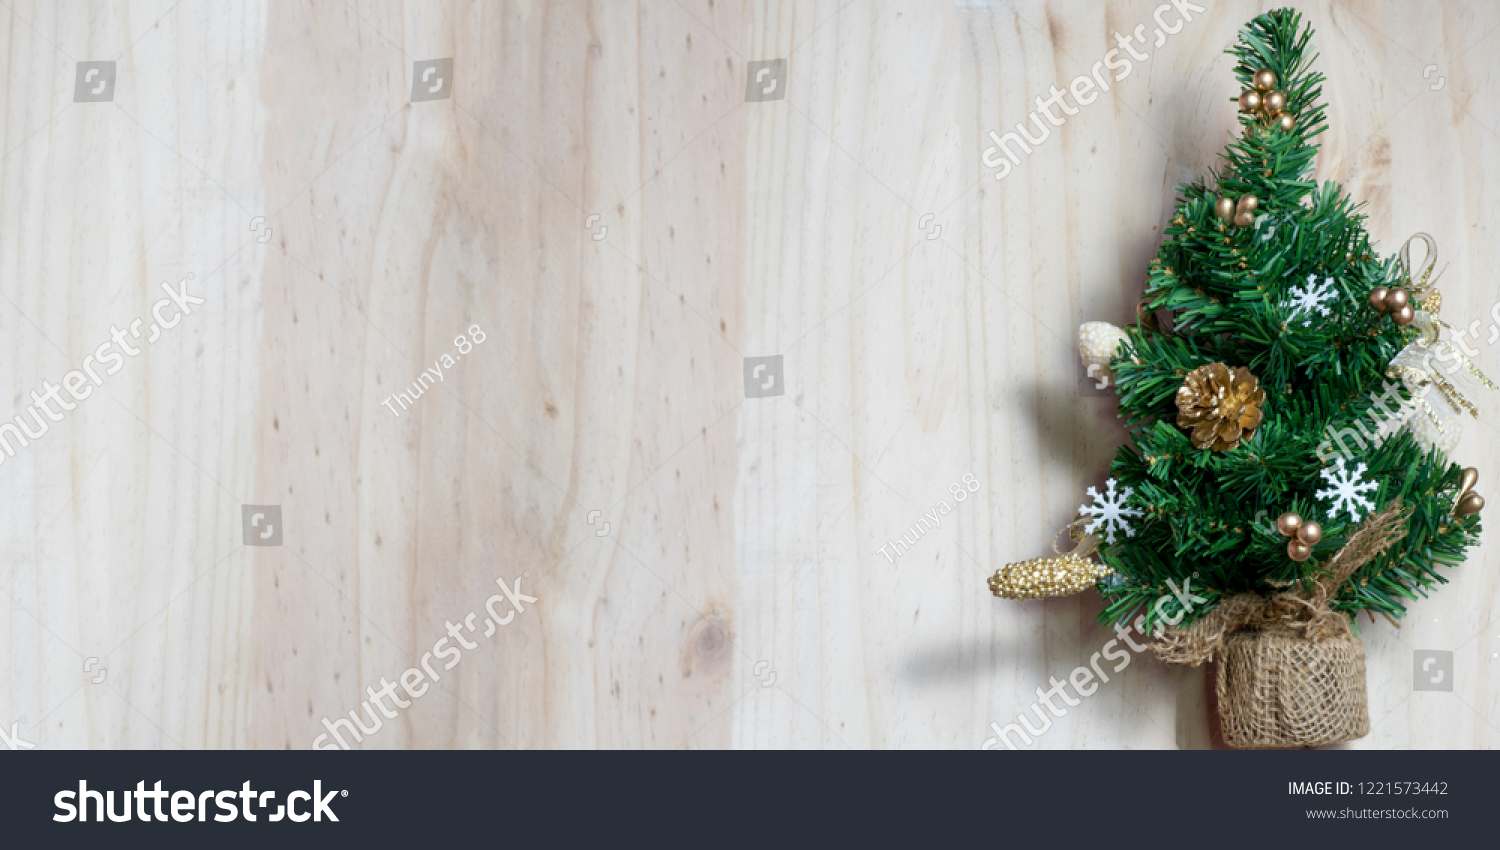 Christmas Background Small Christmas Tree Decorations Stock Photo Edit Now 1221573442